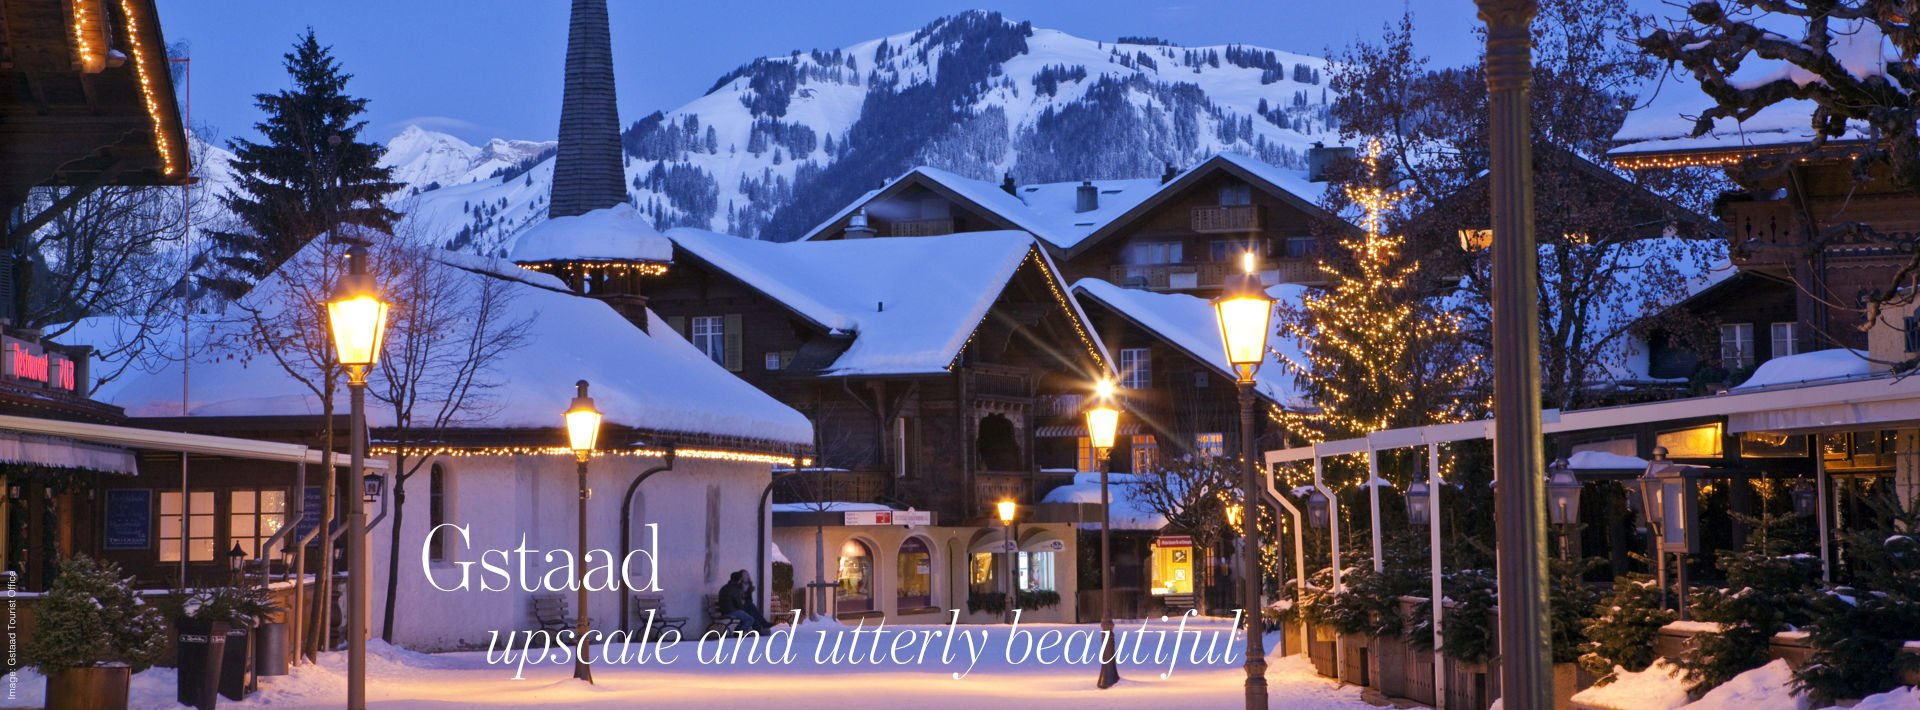 The promenade in Gstaad an early winter evening